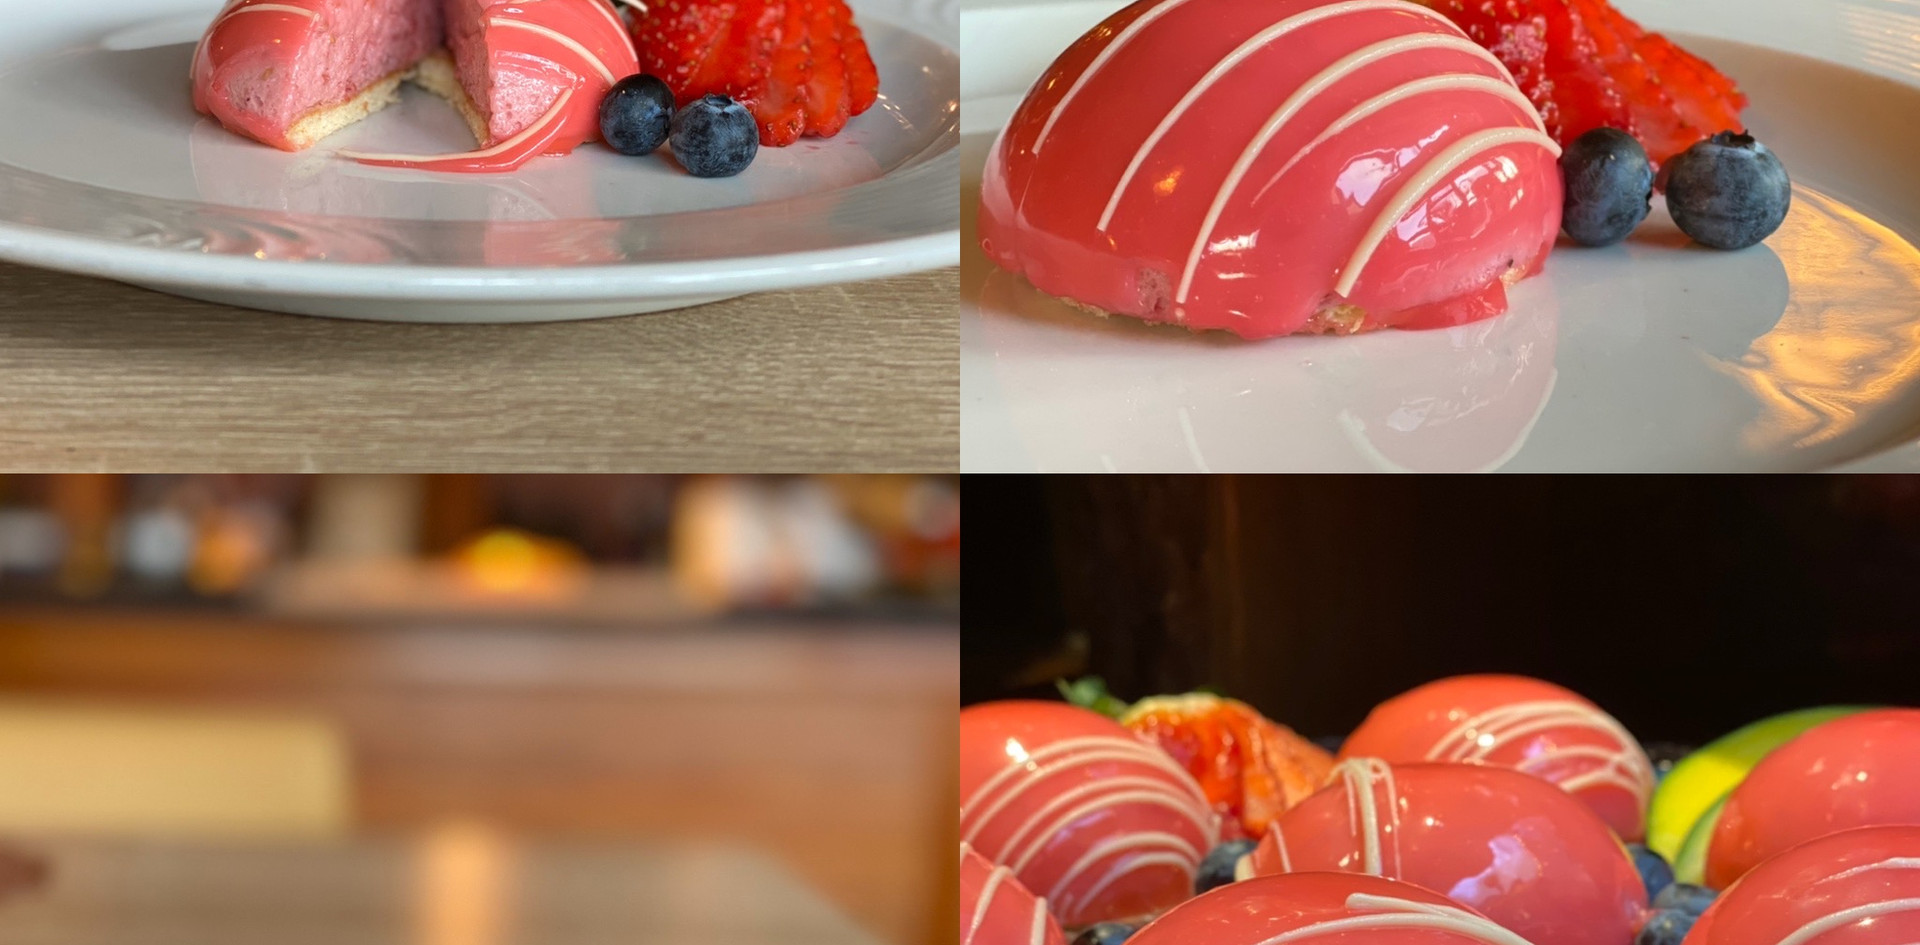 selbstgemachte Desserts Lunch & Sweet - Hotel Wegner - The culinary Art Hotel